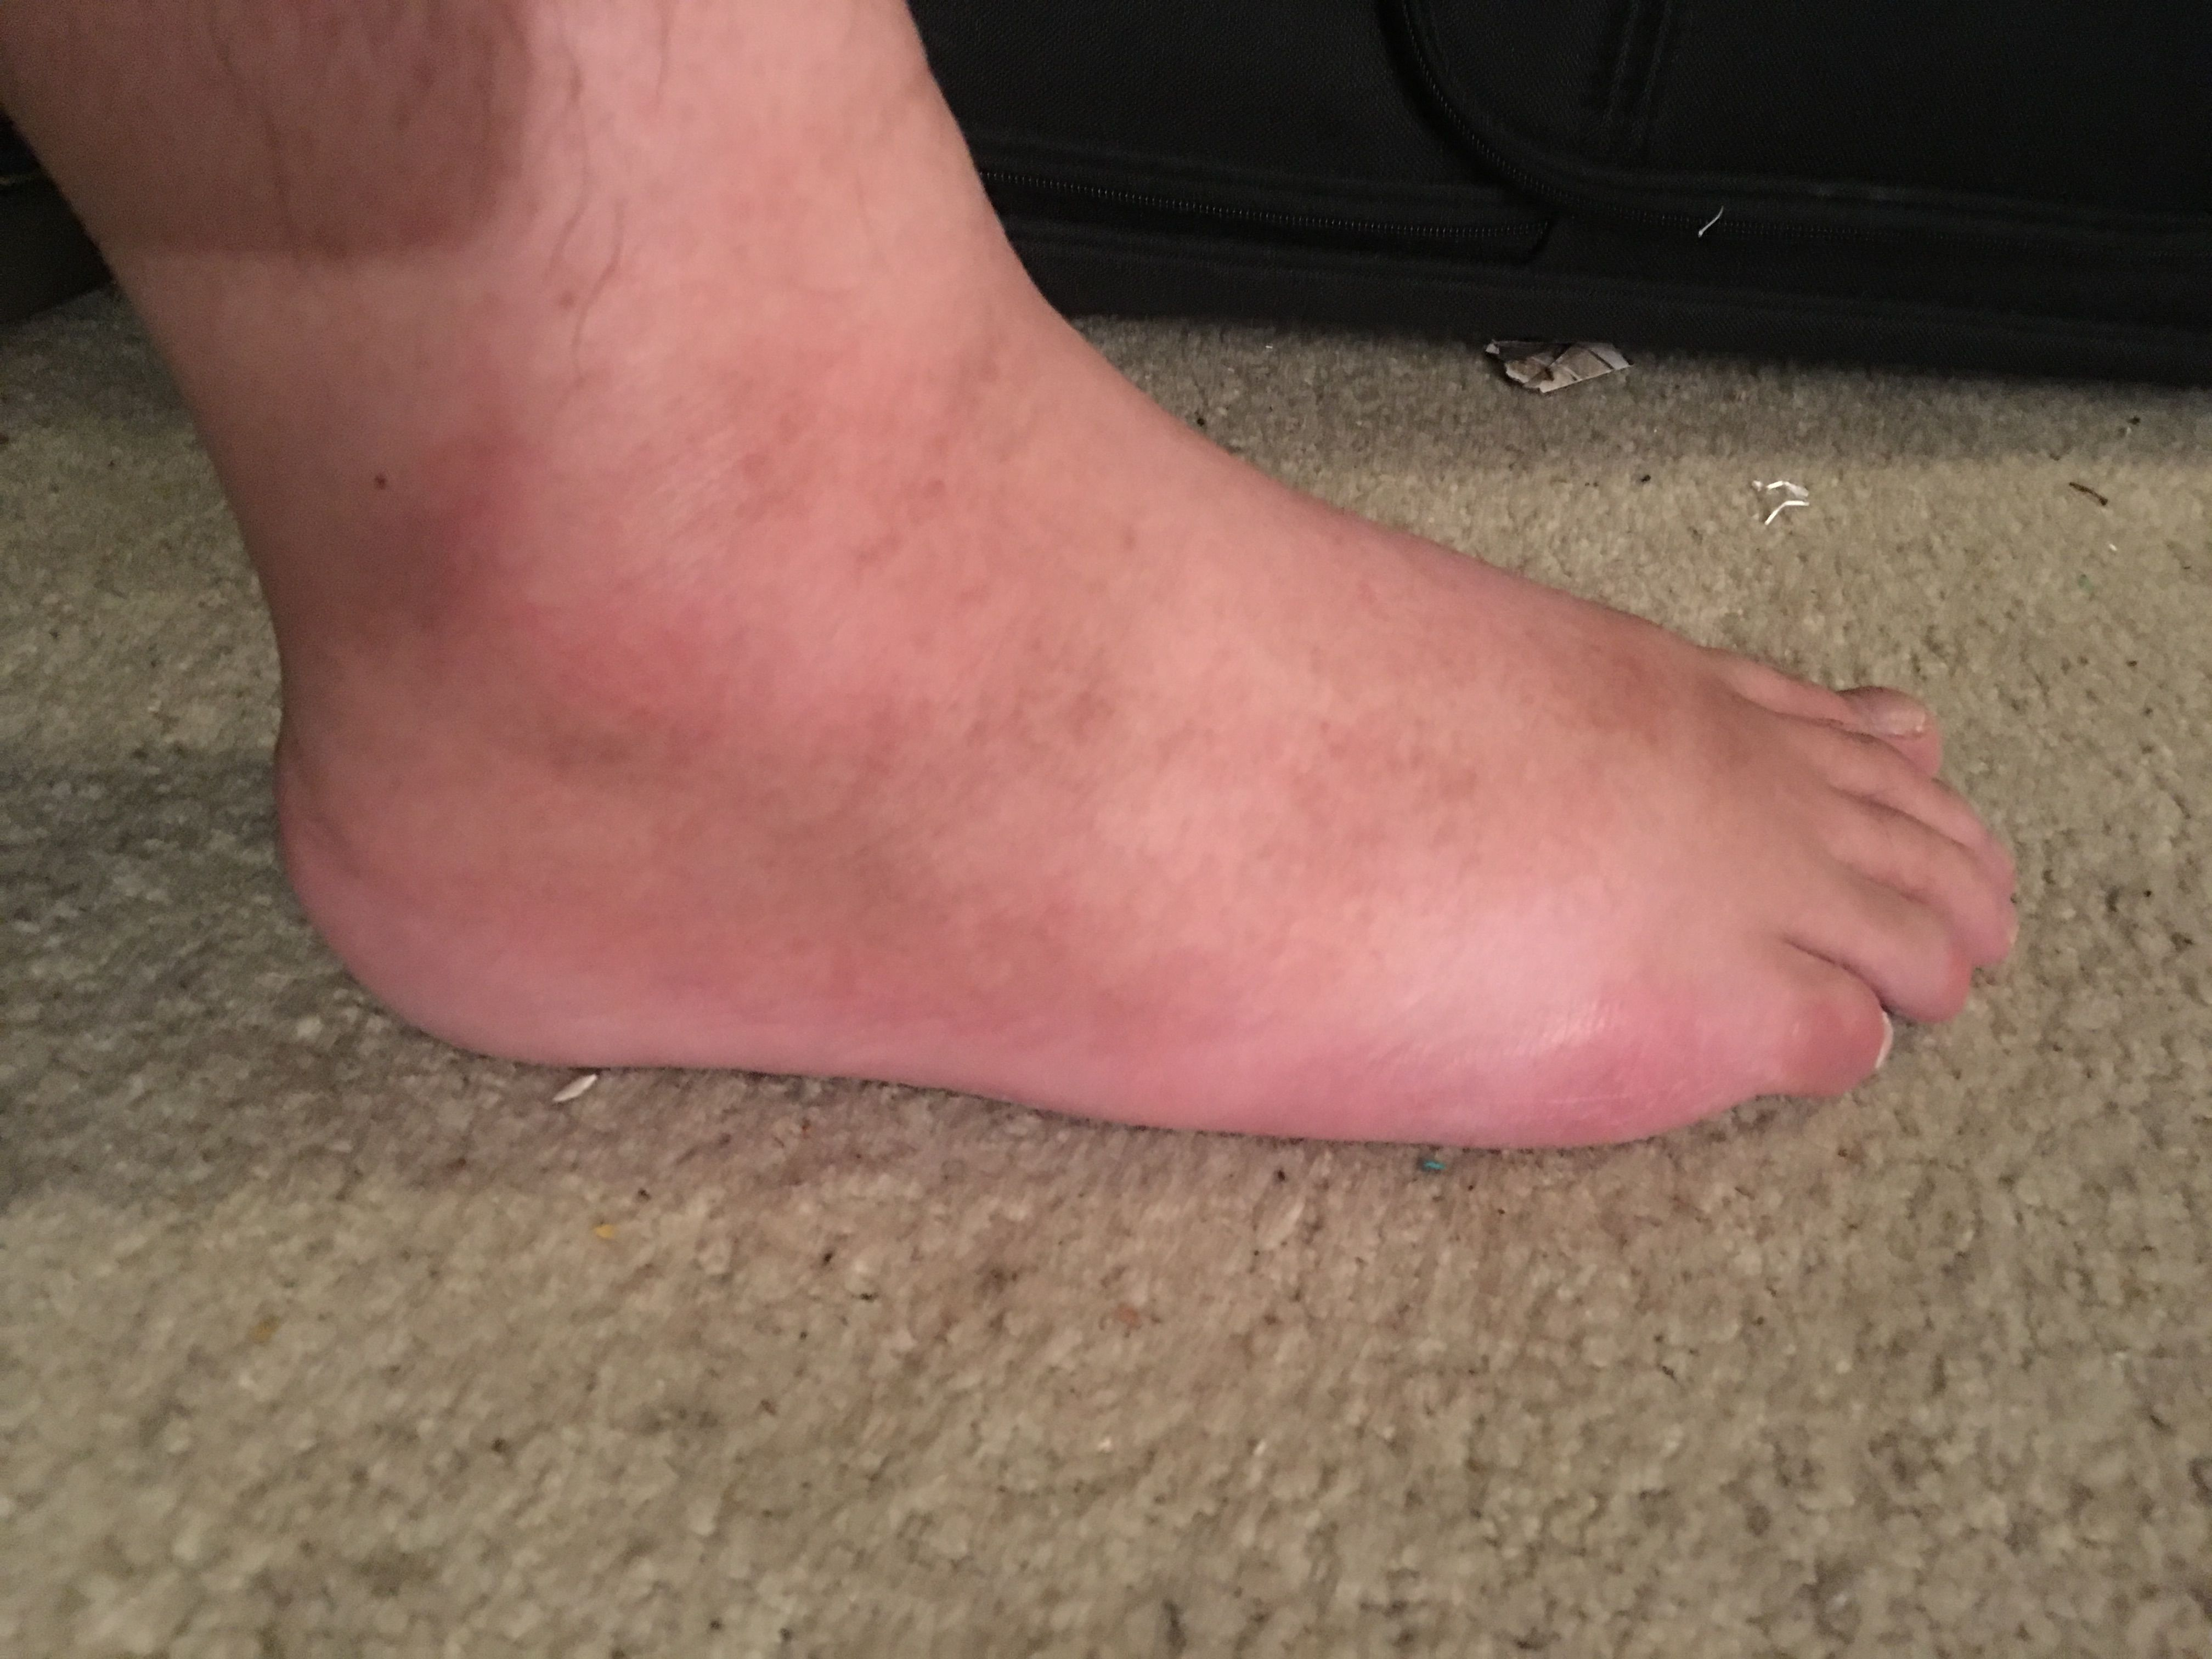 File:Cellulitis of foot 02.jpg - Wikimedia Commons